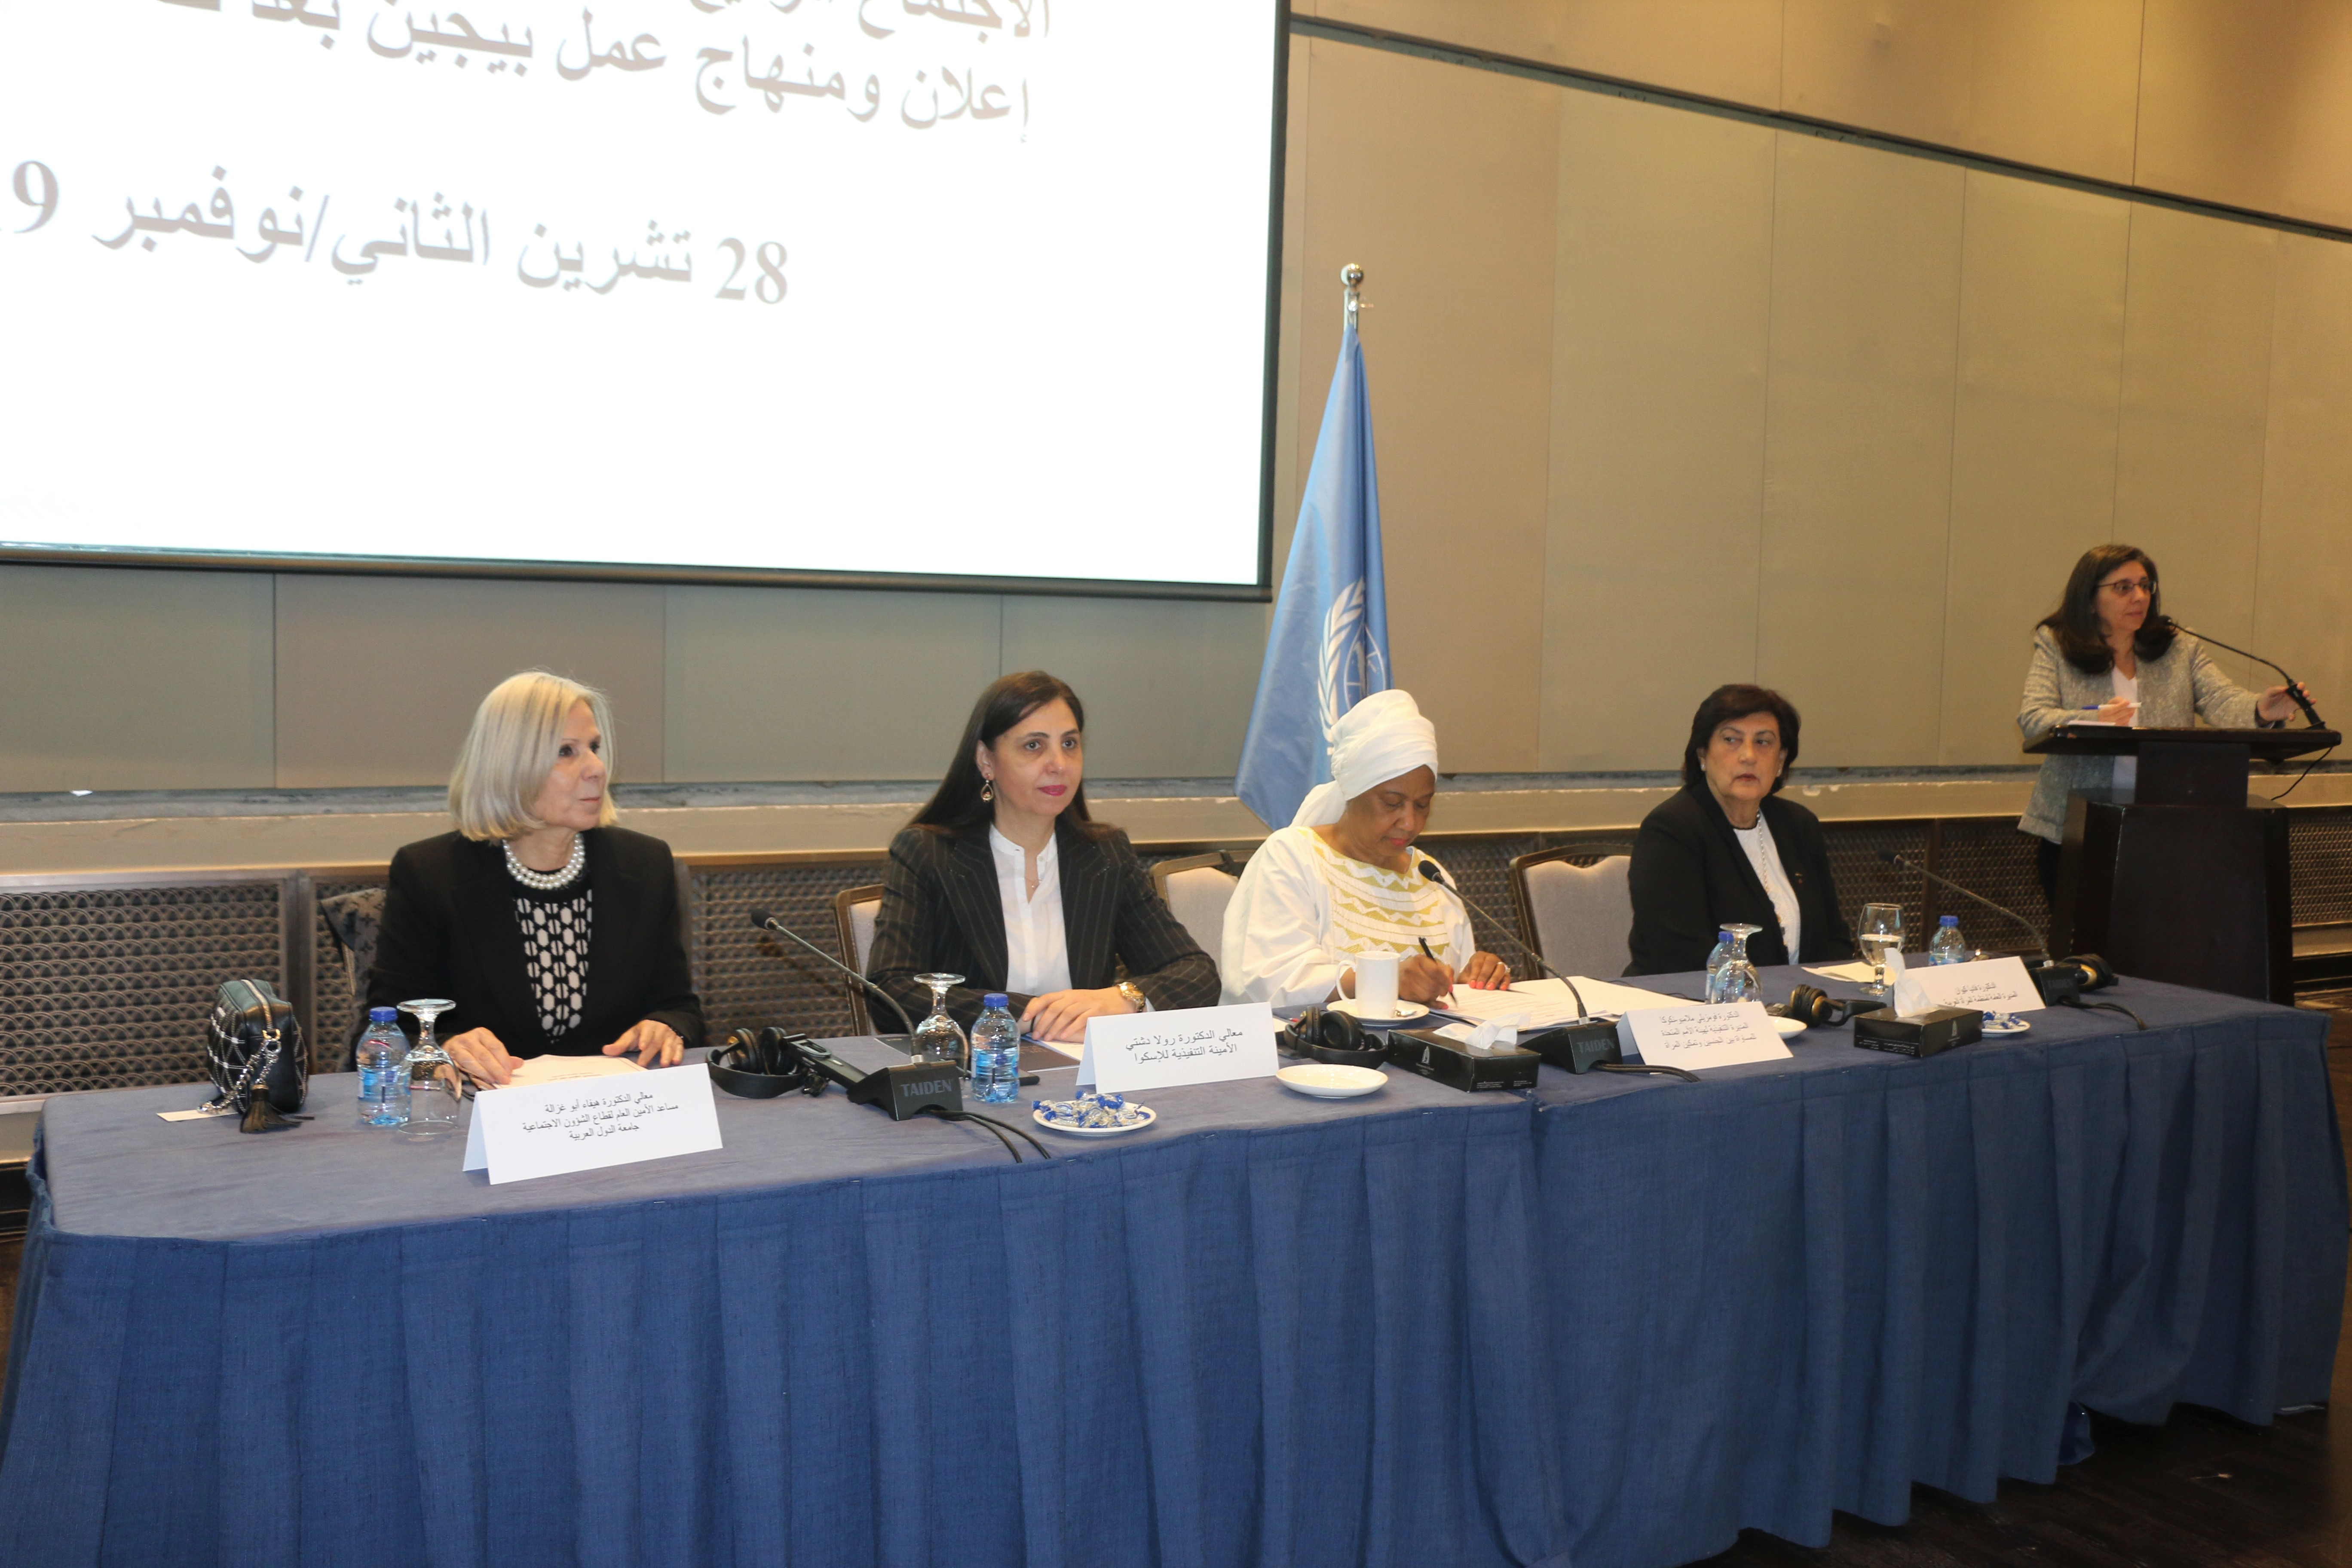 Press release: Arab stakeholders agree on priorities for gender equality and  women's empowerment in the coming five years